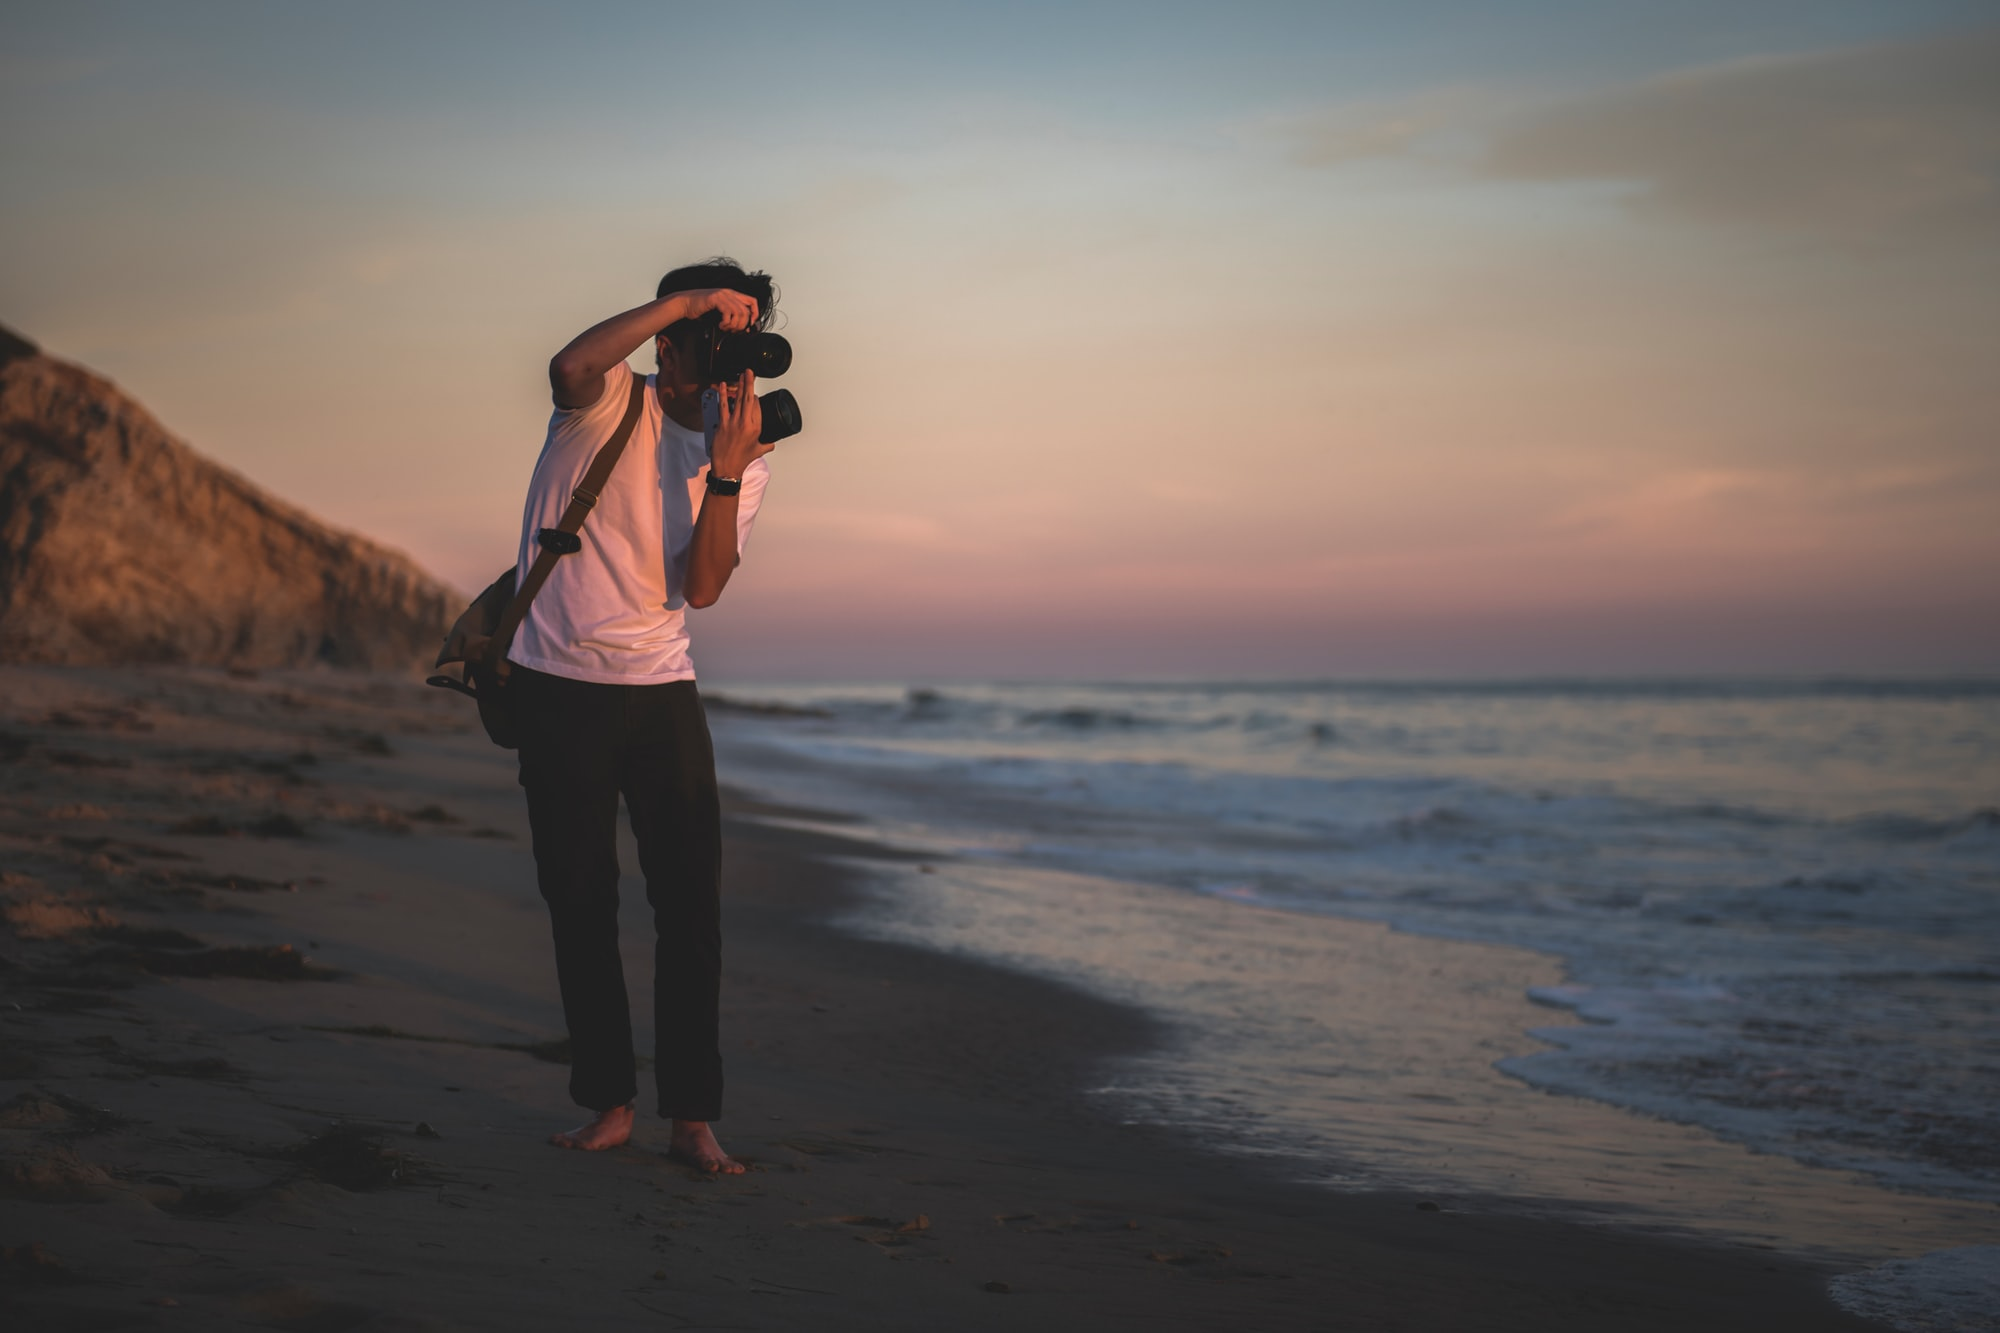 Out shooting sunset pictures at Gaviota Beach, when I bumped into photographer, Minh Tran.